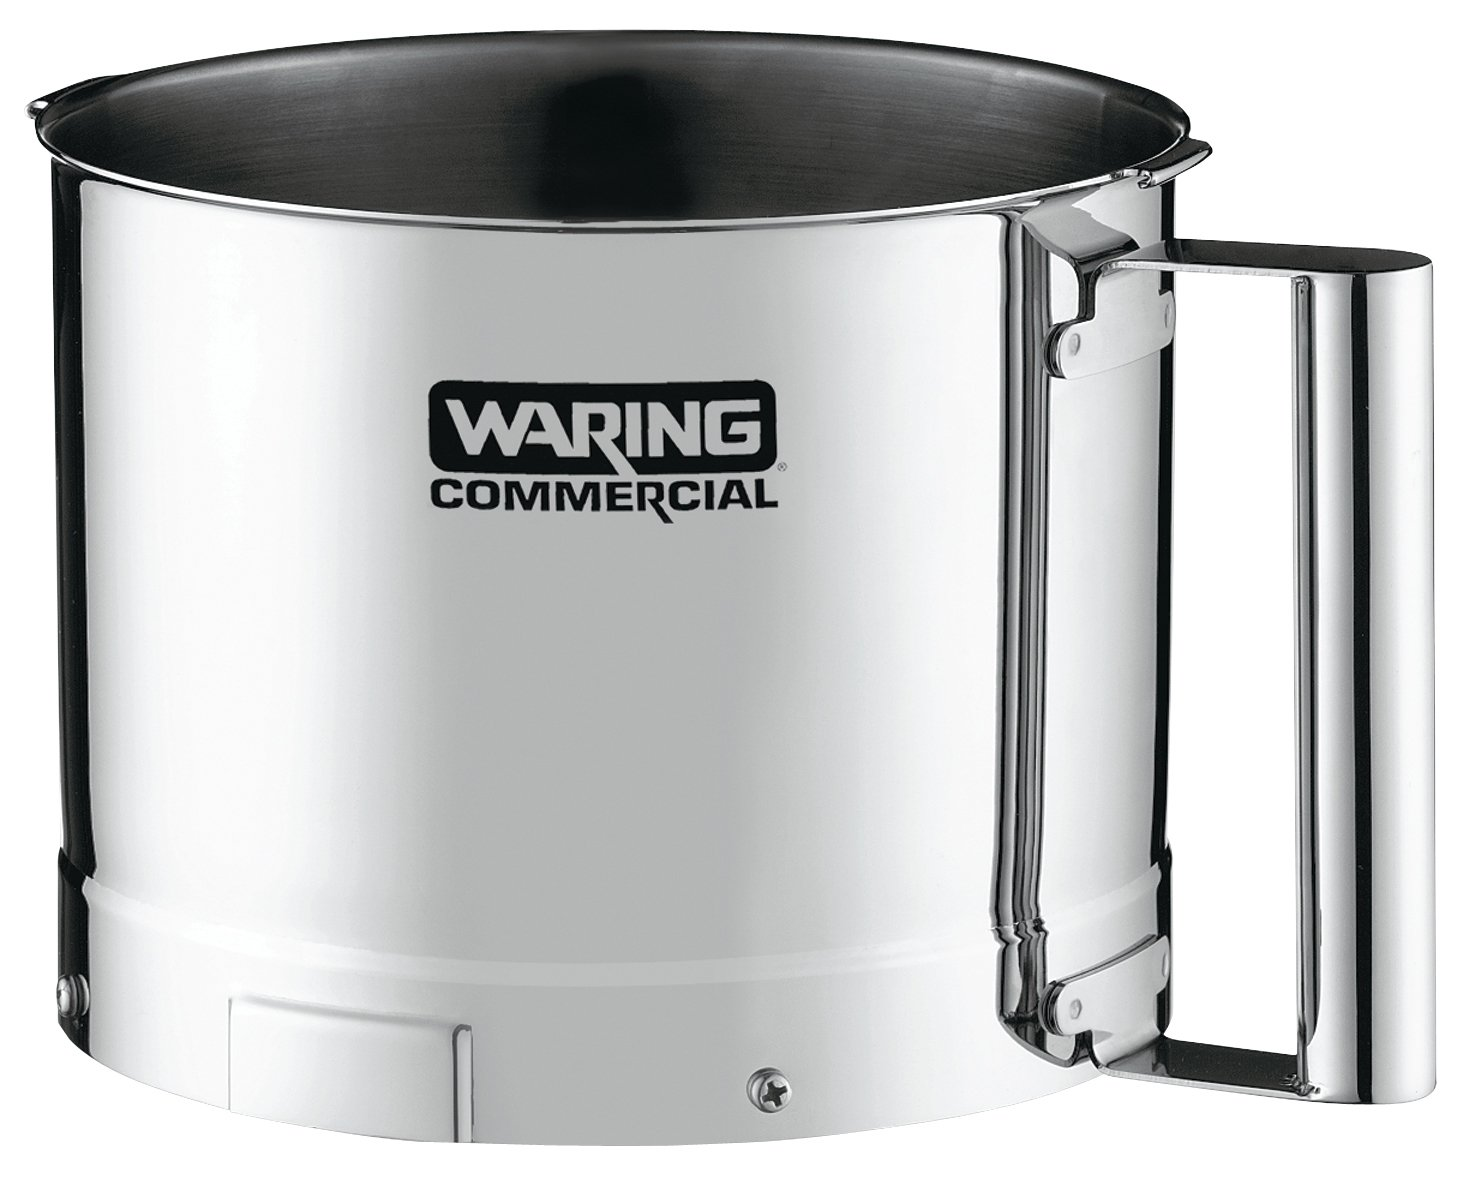 Waring Commercial DFP10 Food Processor Batch Bowl with Handle